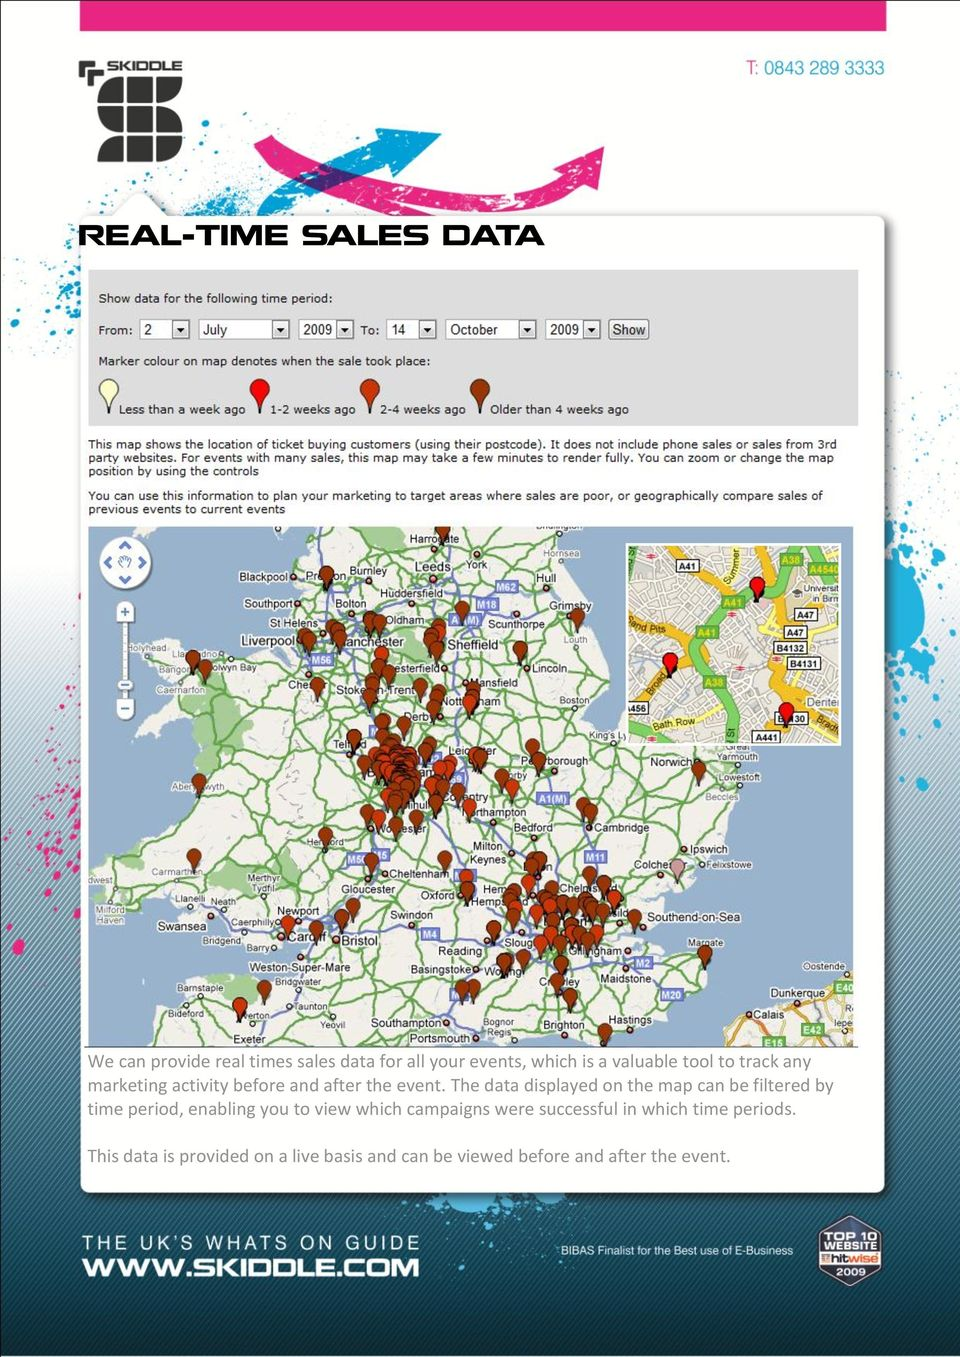 The data displayed on the map can be filtered by time period, enabling you to view which